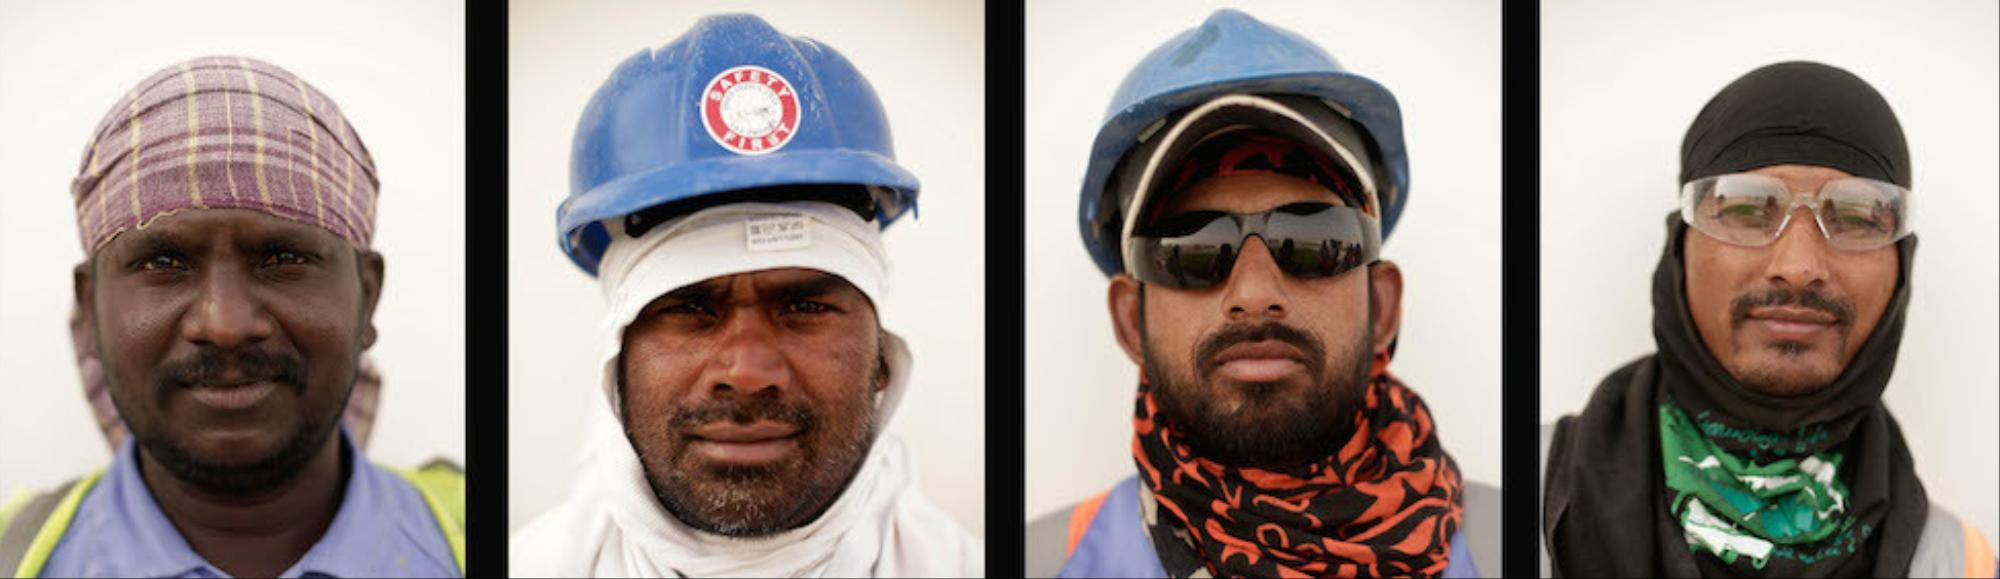 Conditions Are Not Improving for Qatar's Desperate World Cup Workers